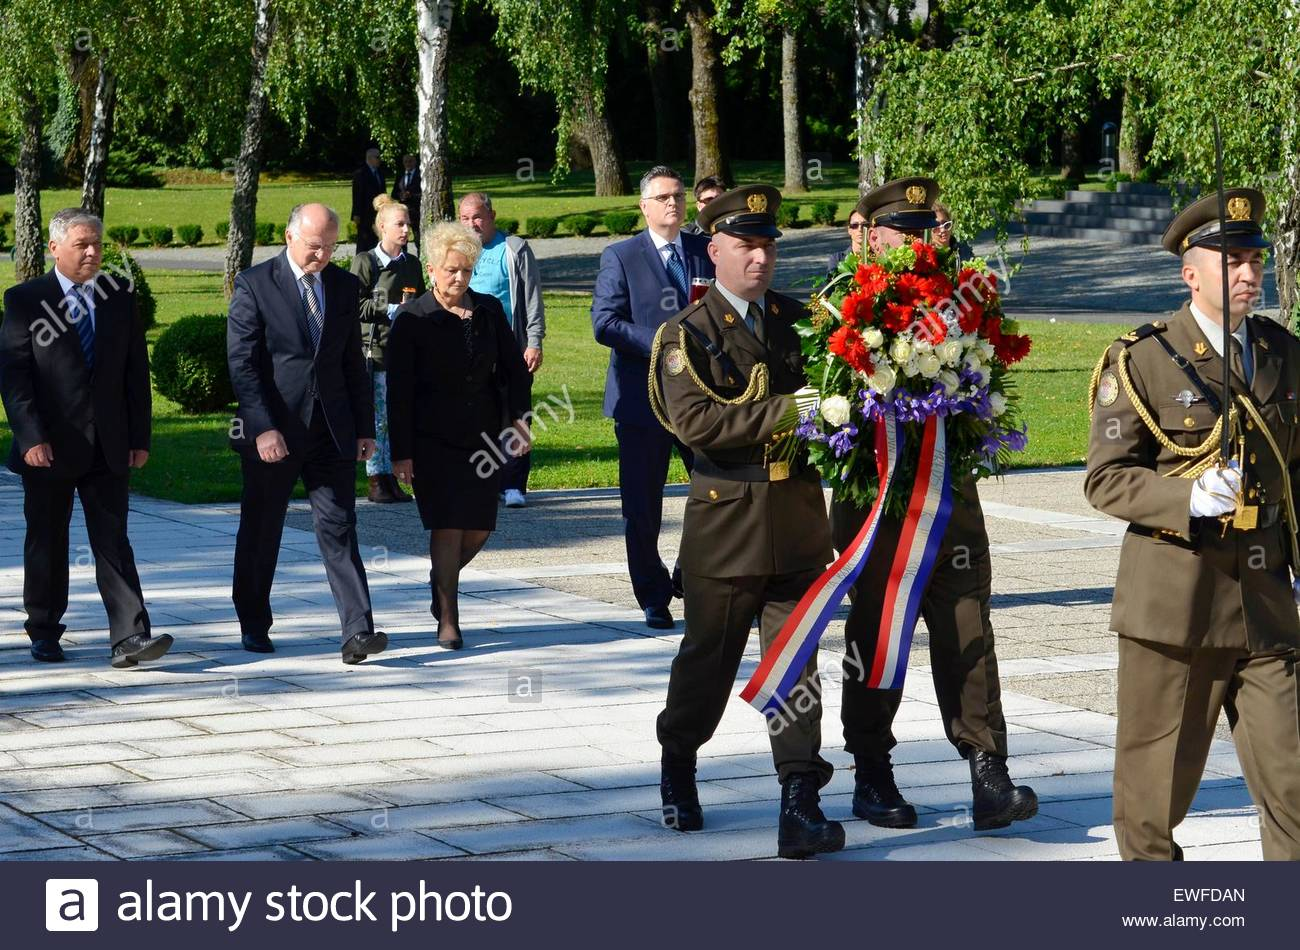 Of Wreaths Zagrebcroatia 25th June 2015 Laying Of Wreaths At The City